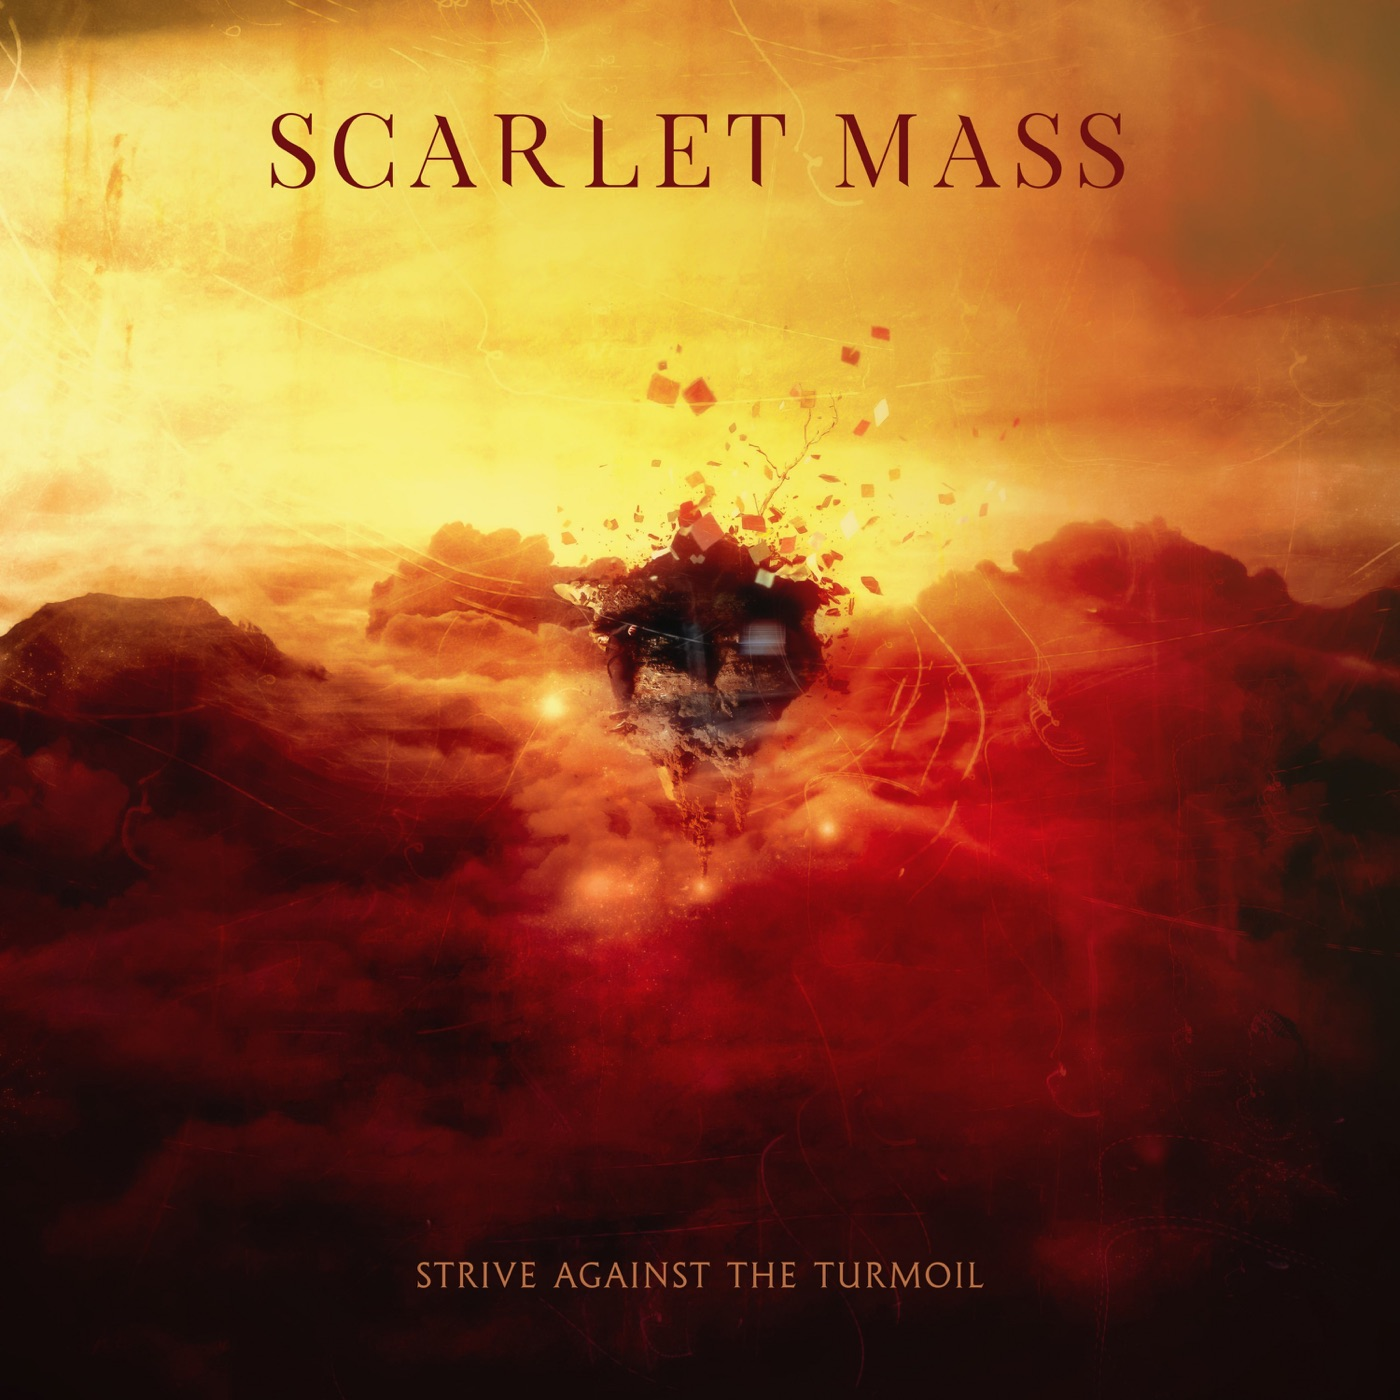 Scarlet Mass - Strive Against The Turmoil (2018)